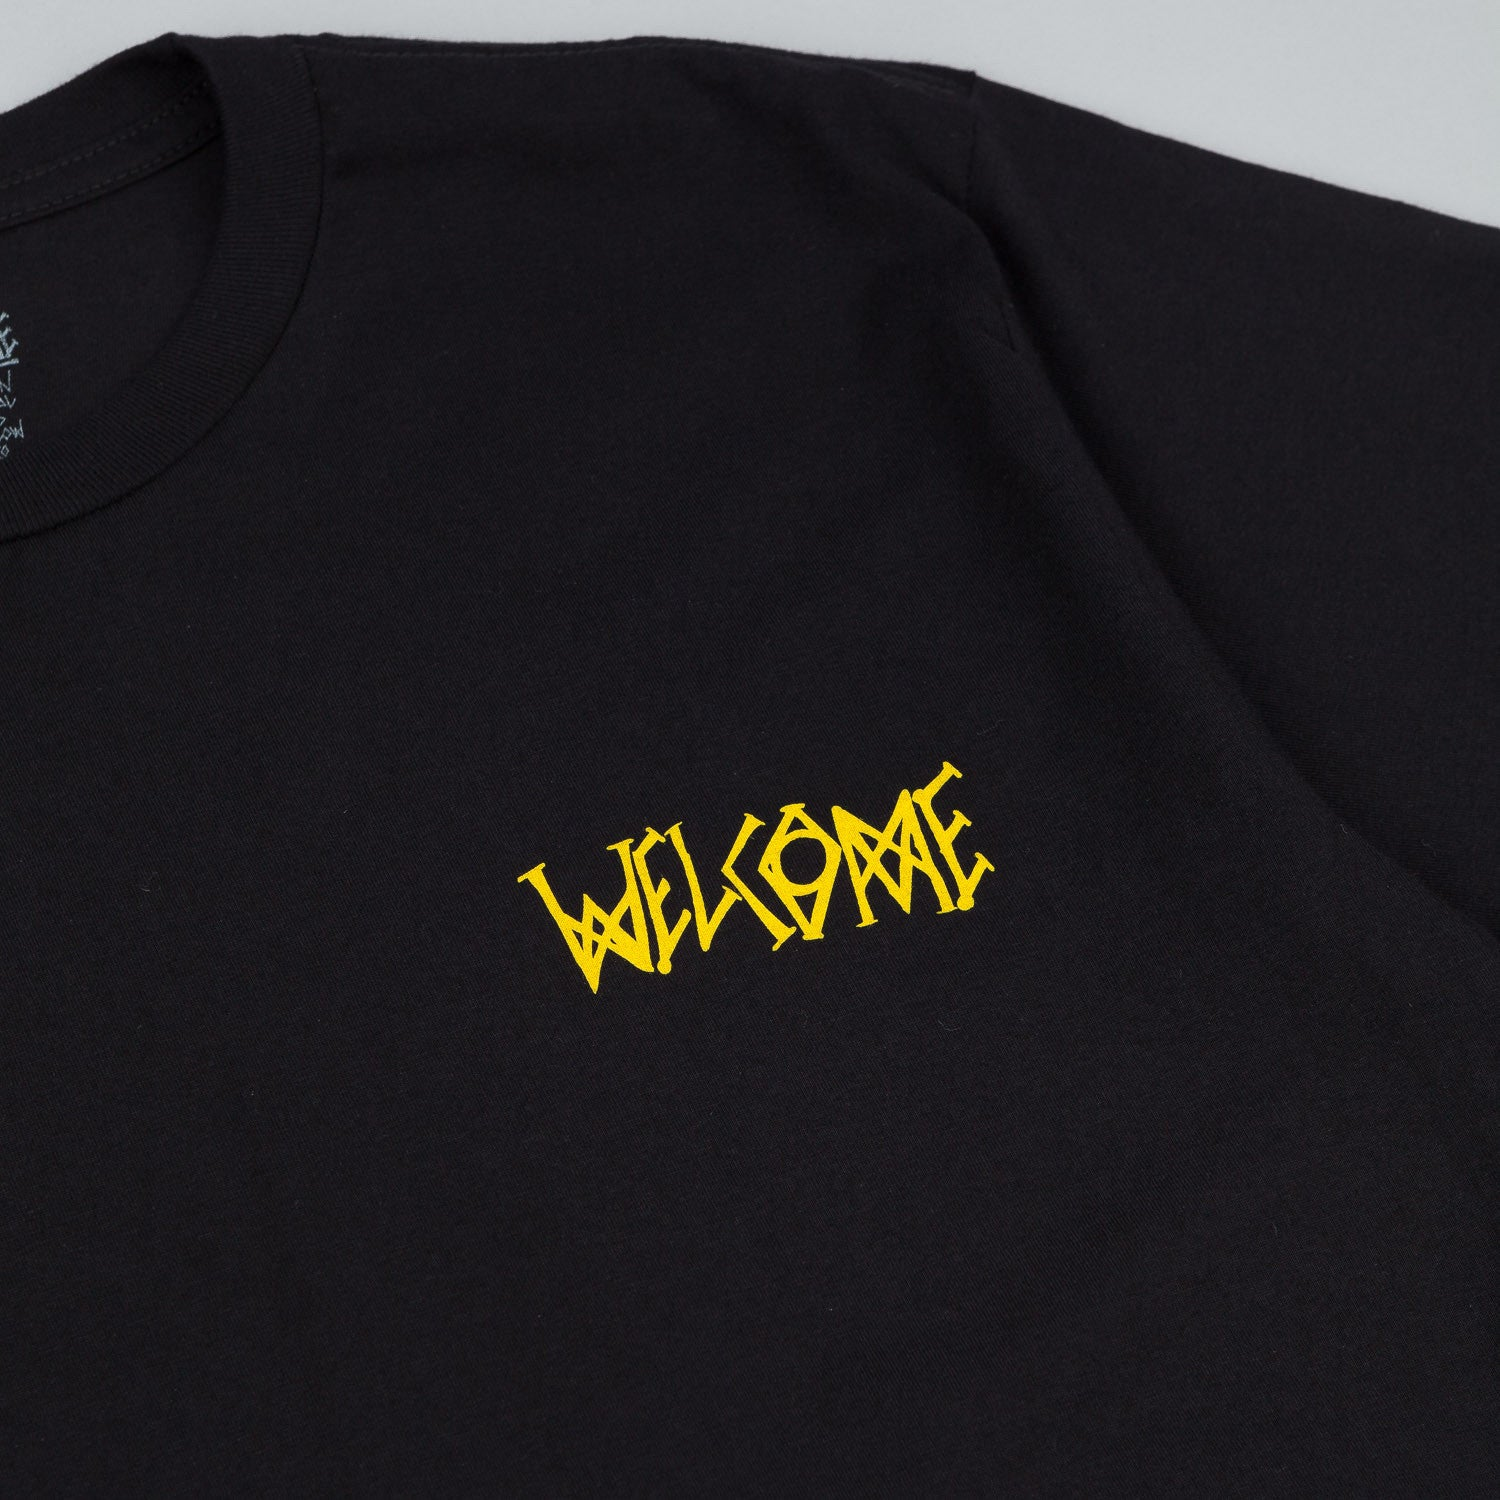 Welcome Tasmanian T-Shirt - Black / Yellow